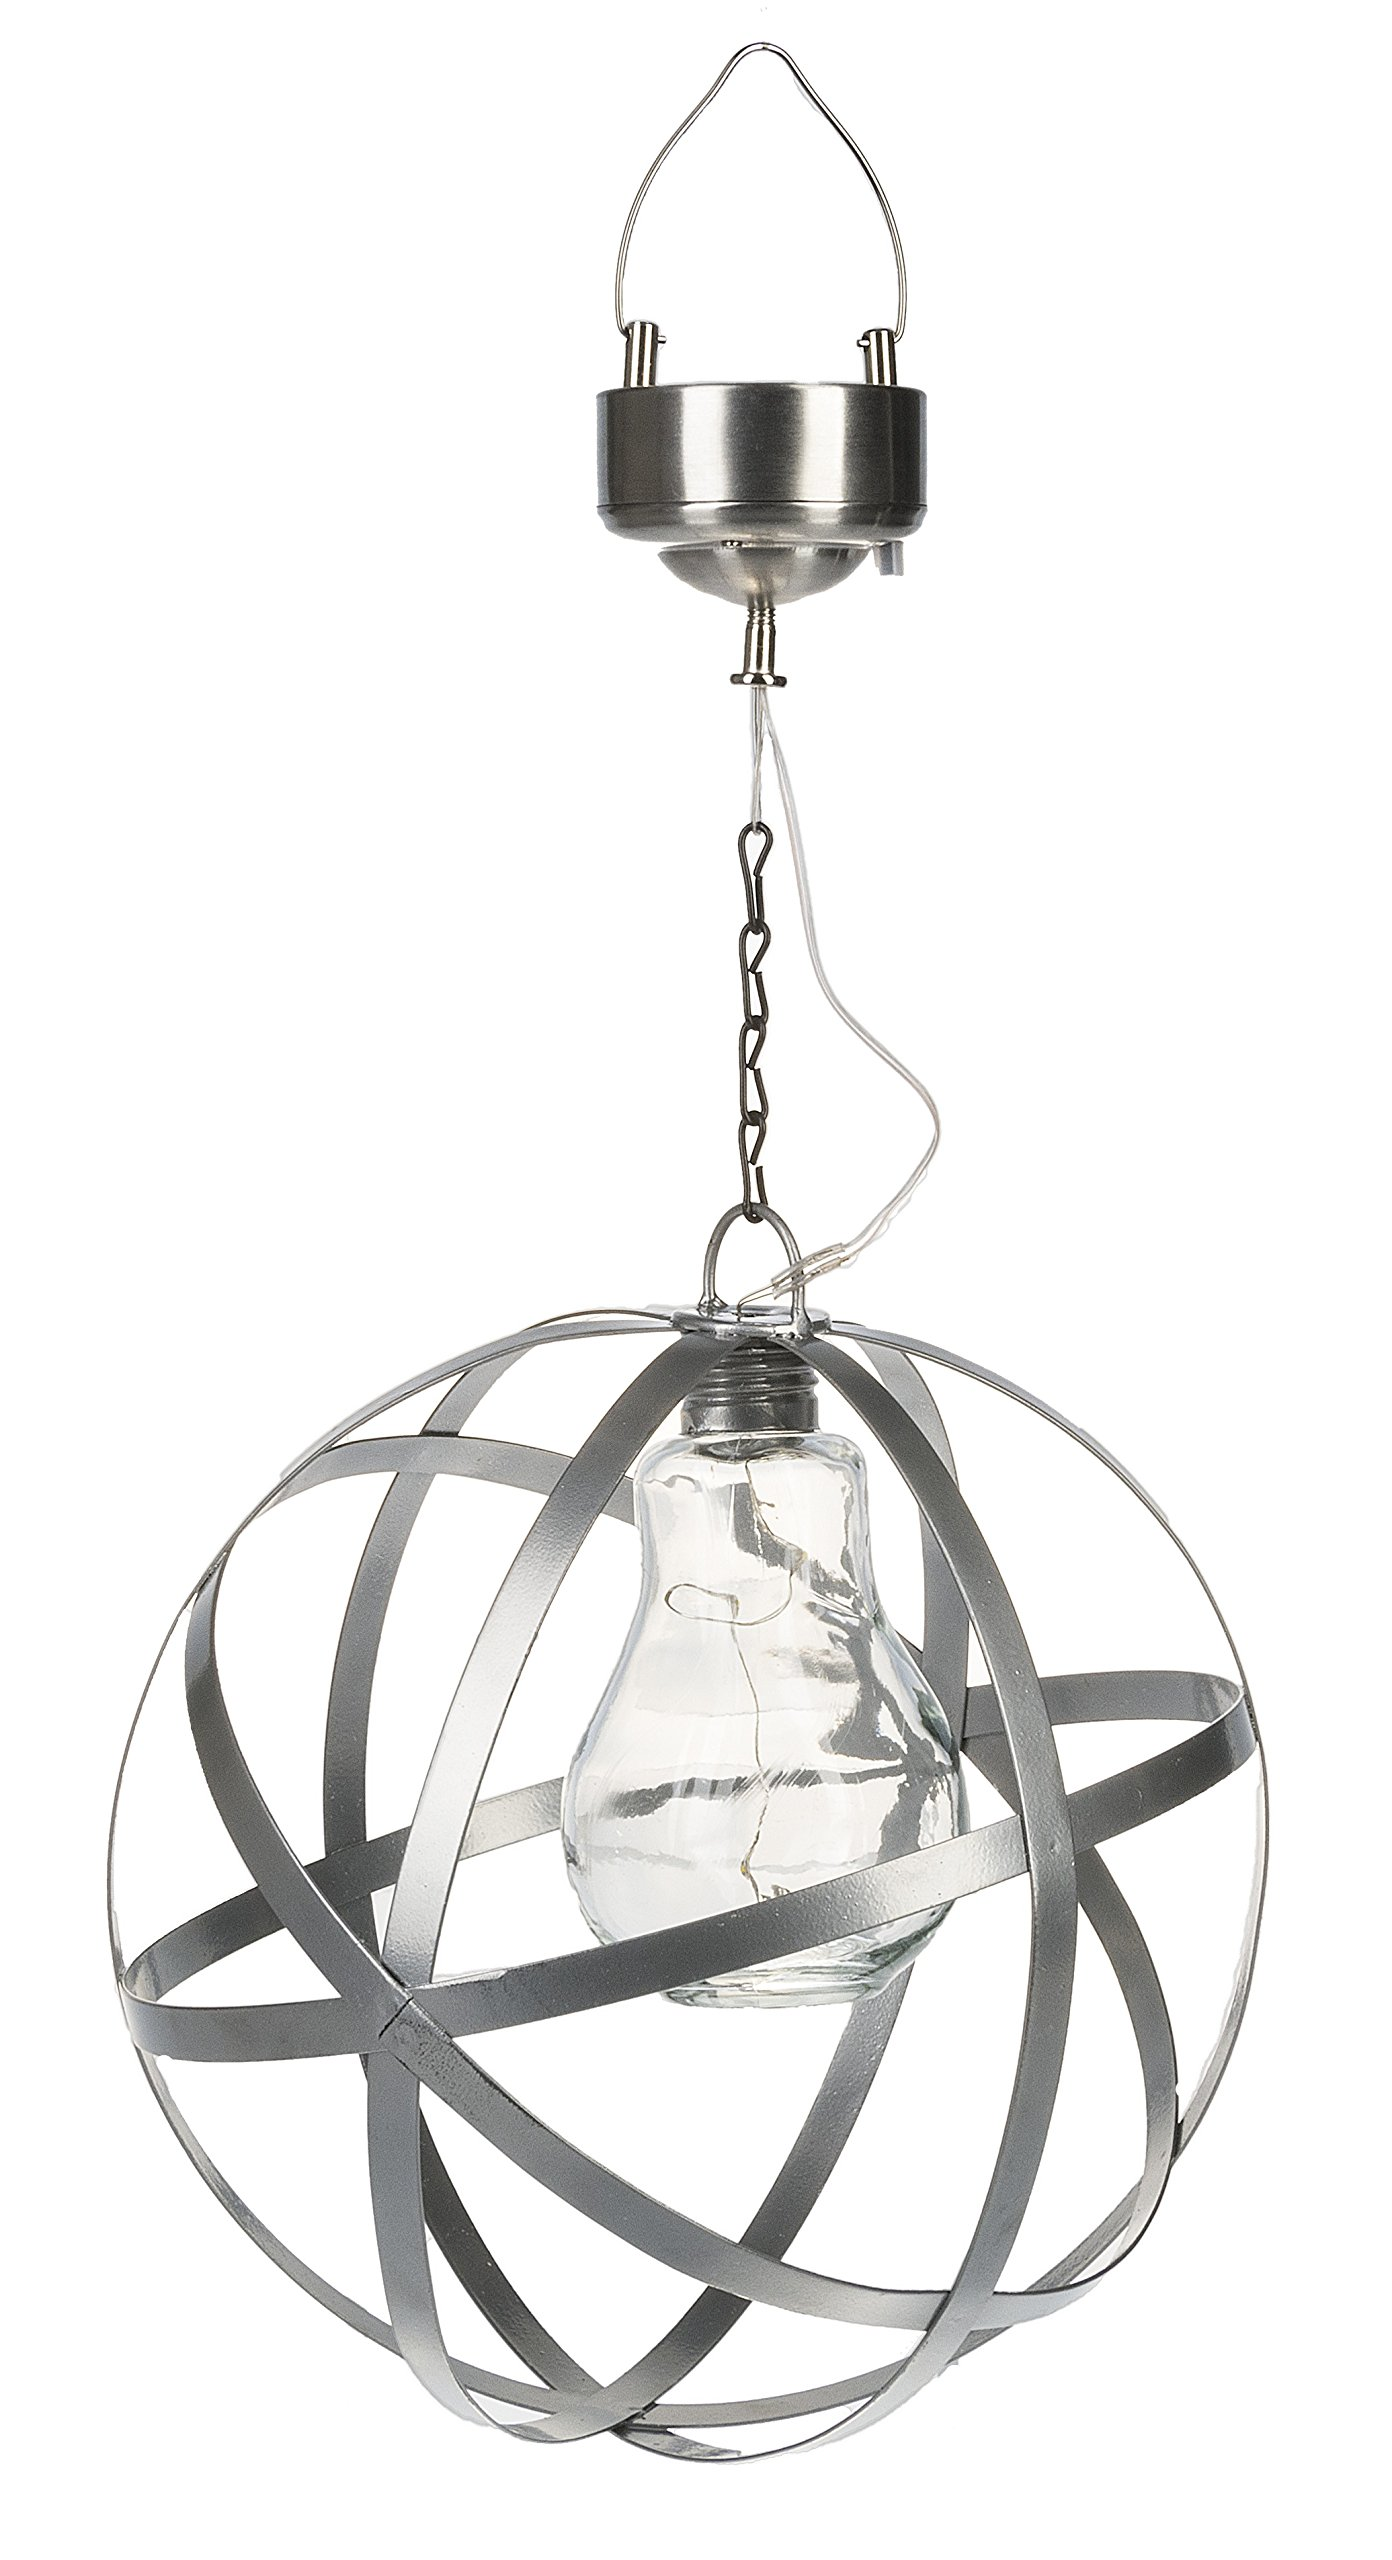 Silver Tone Orb Cage With Solar Panel 8.25 x 14.75 Iron Outdoor Hanging Light